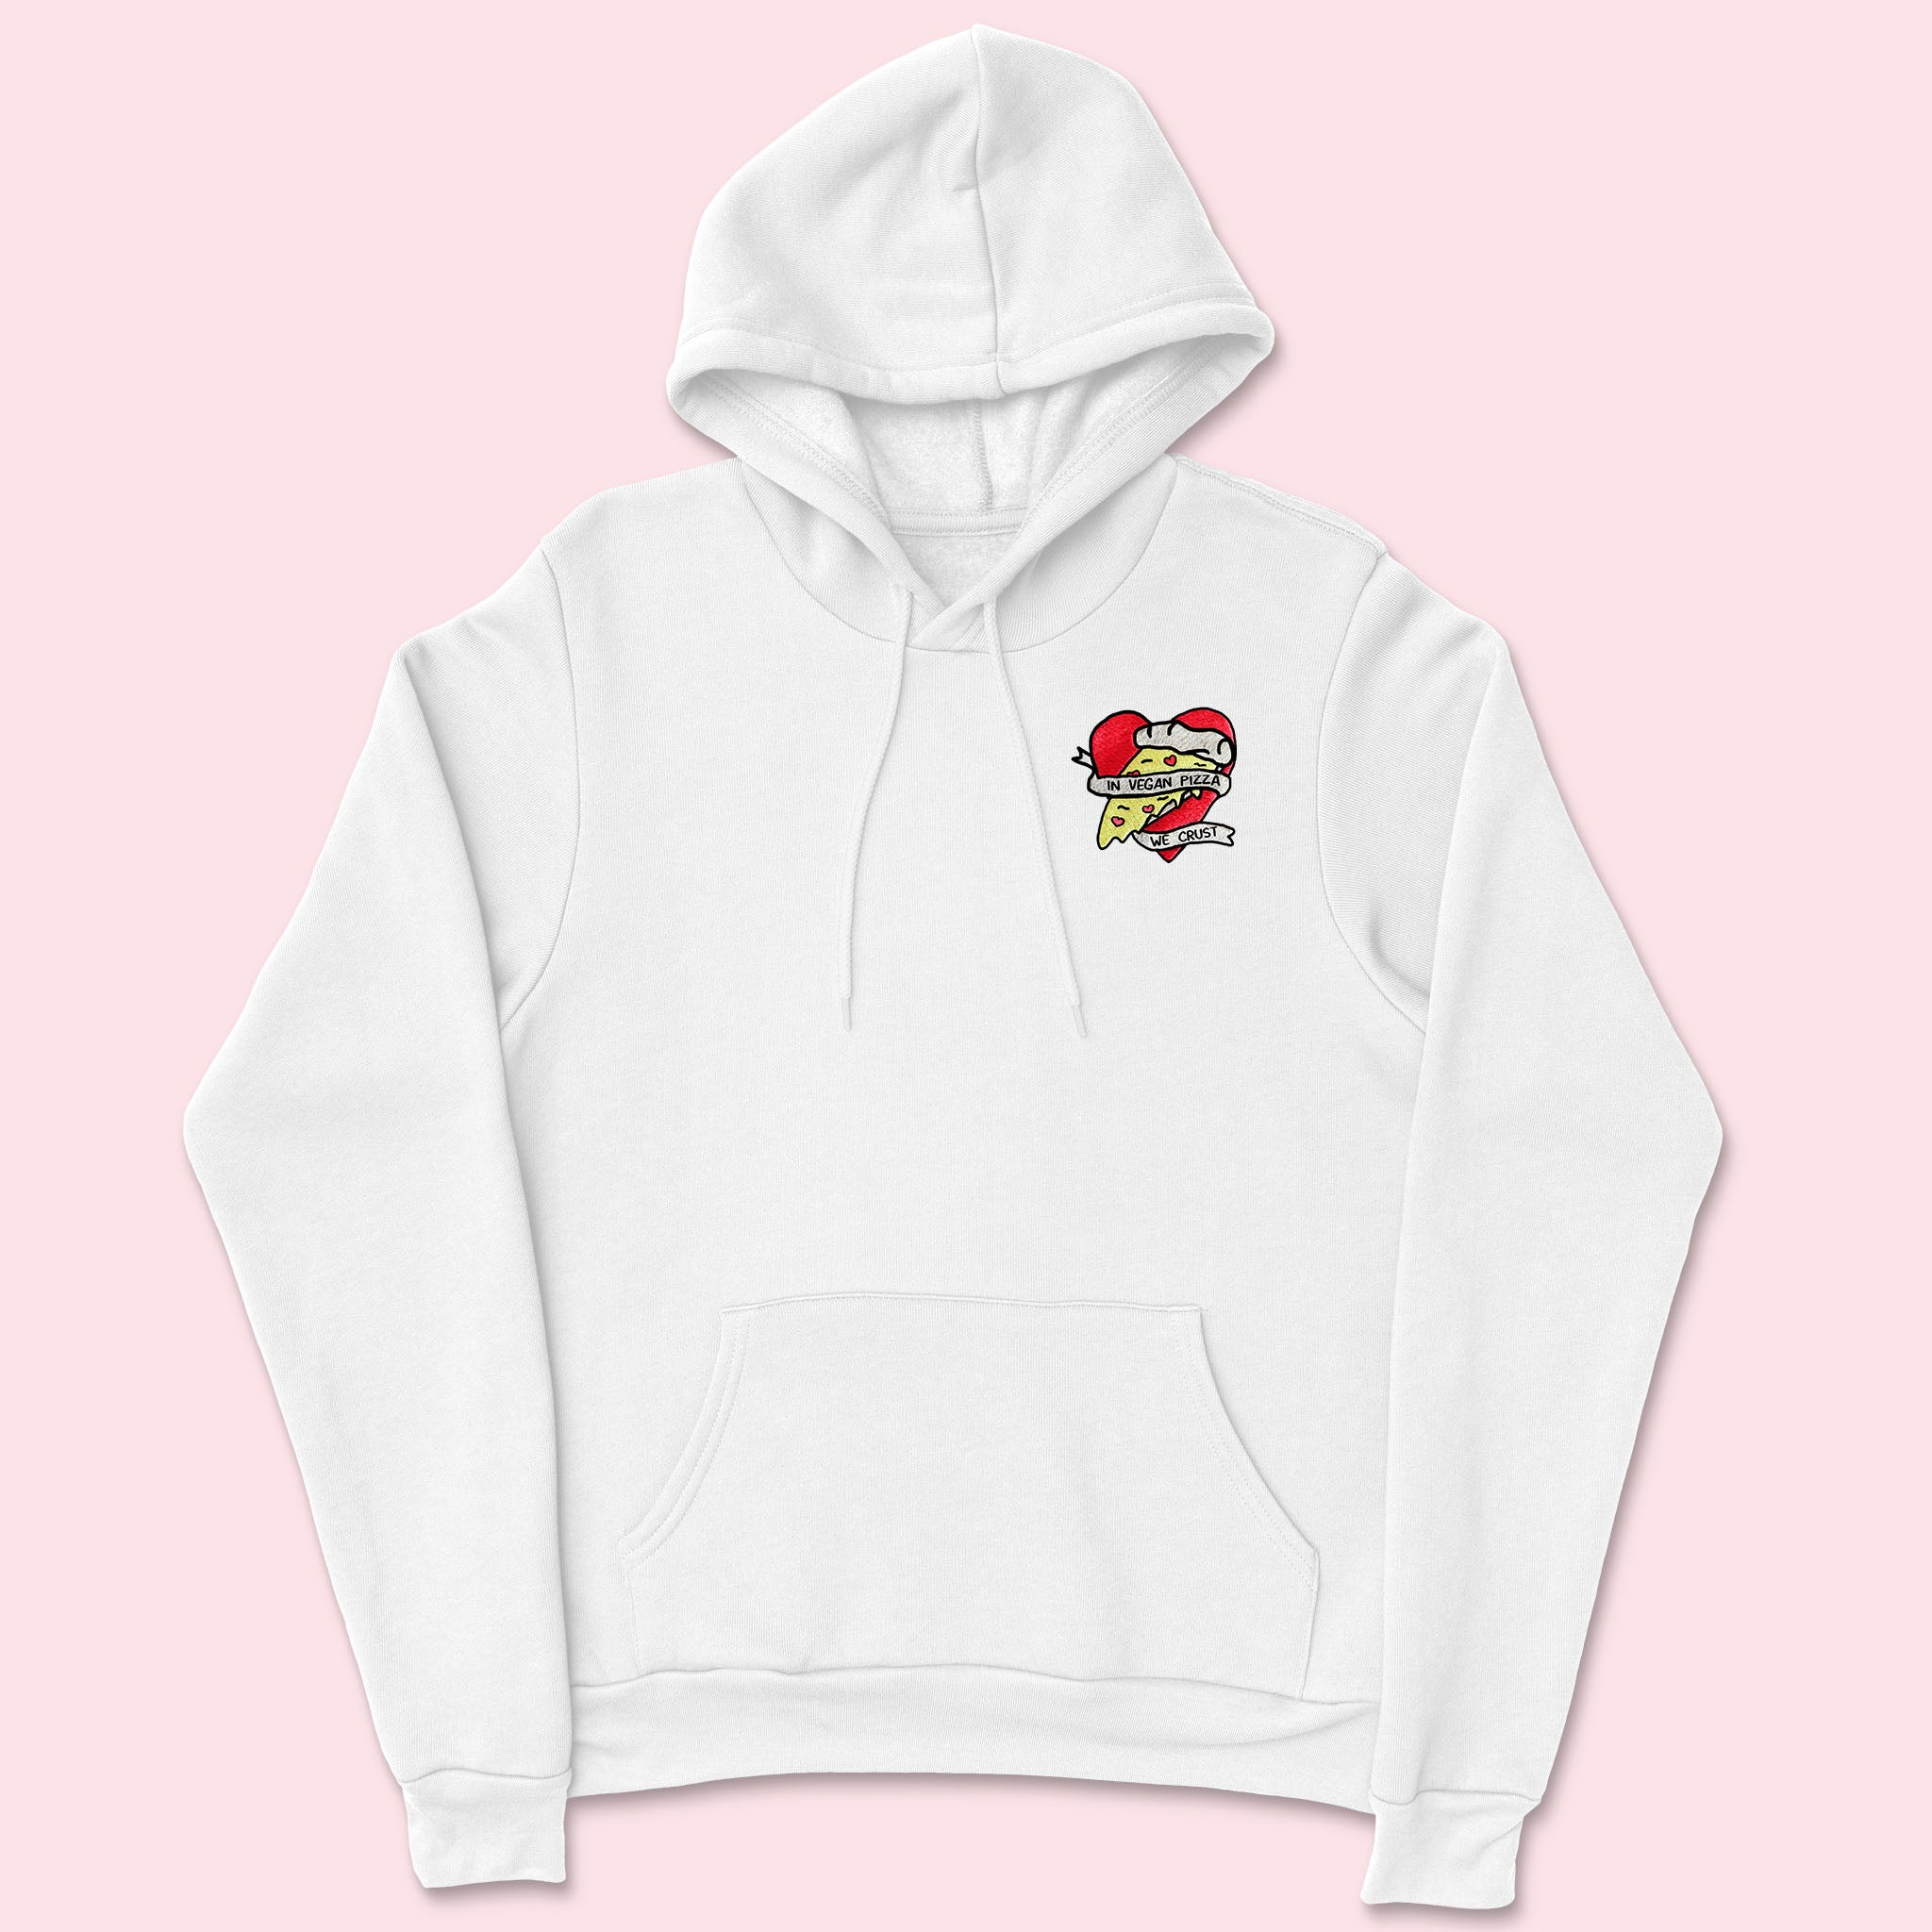 VEGAN PIZZA- Embroidered Unisex Hoodie